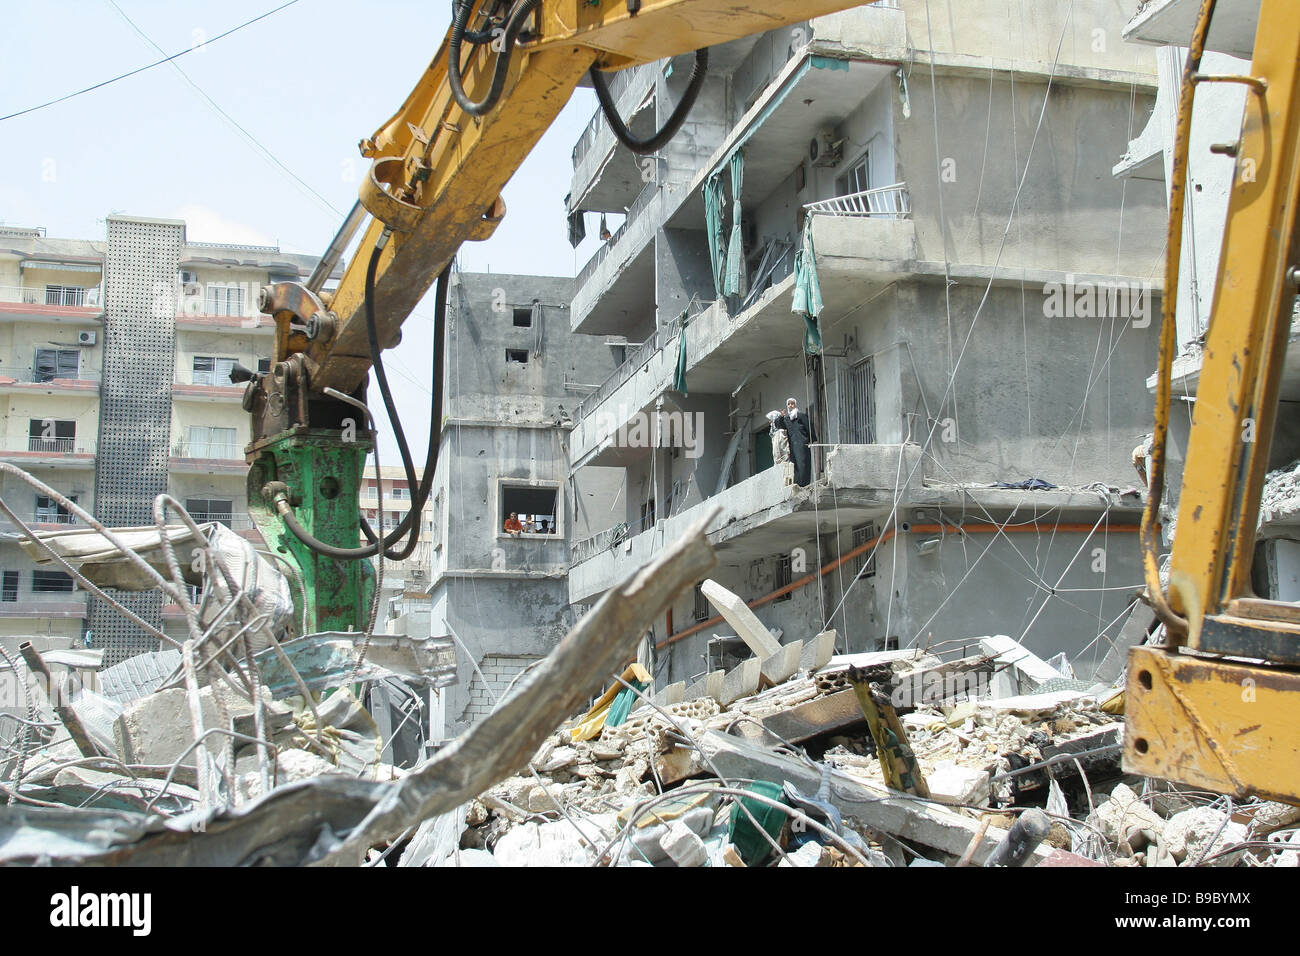 Clearing debris in Tyre near the house of the Hezbollah leader in charge of Southern Lebanon - Stock Image